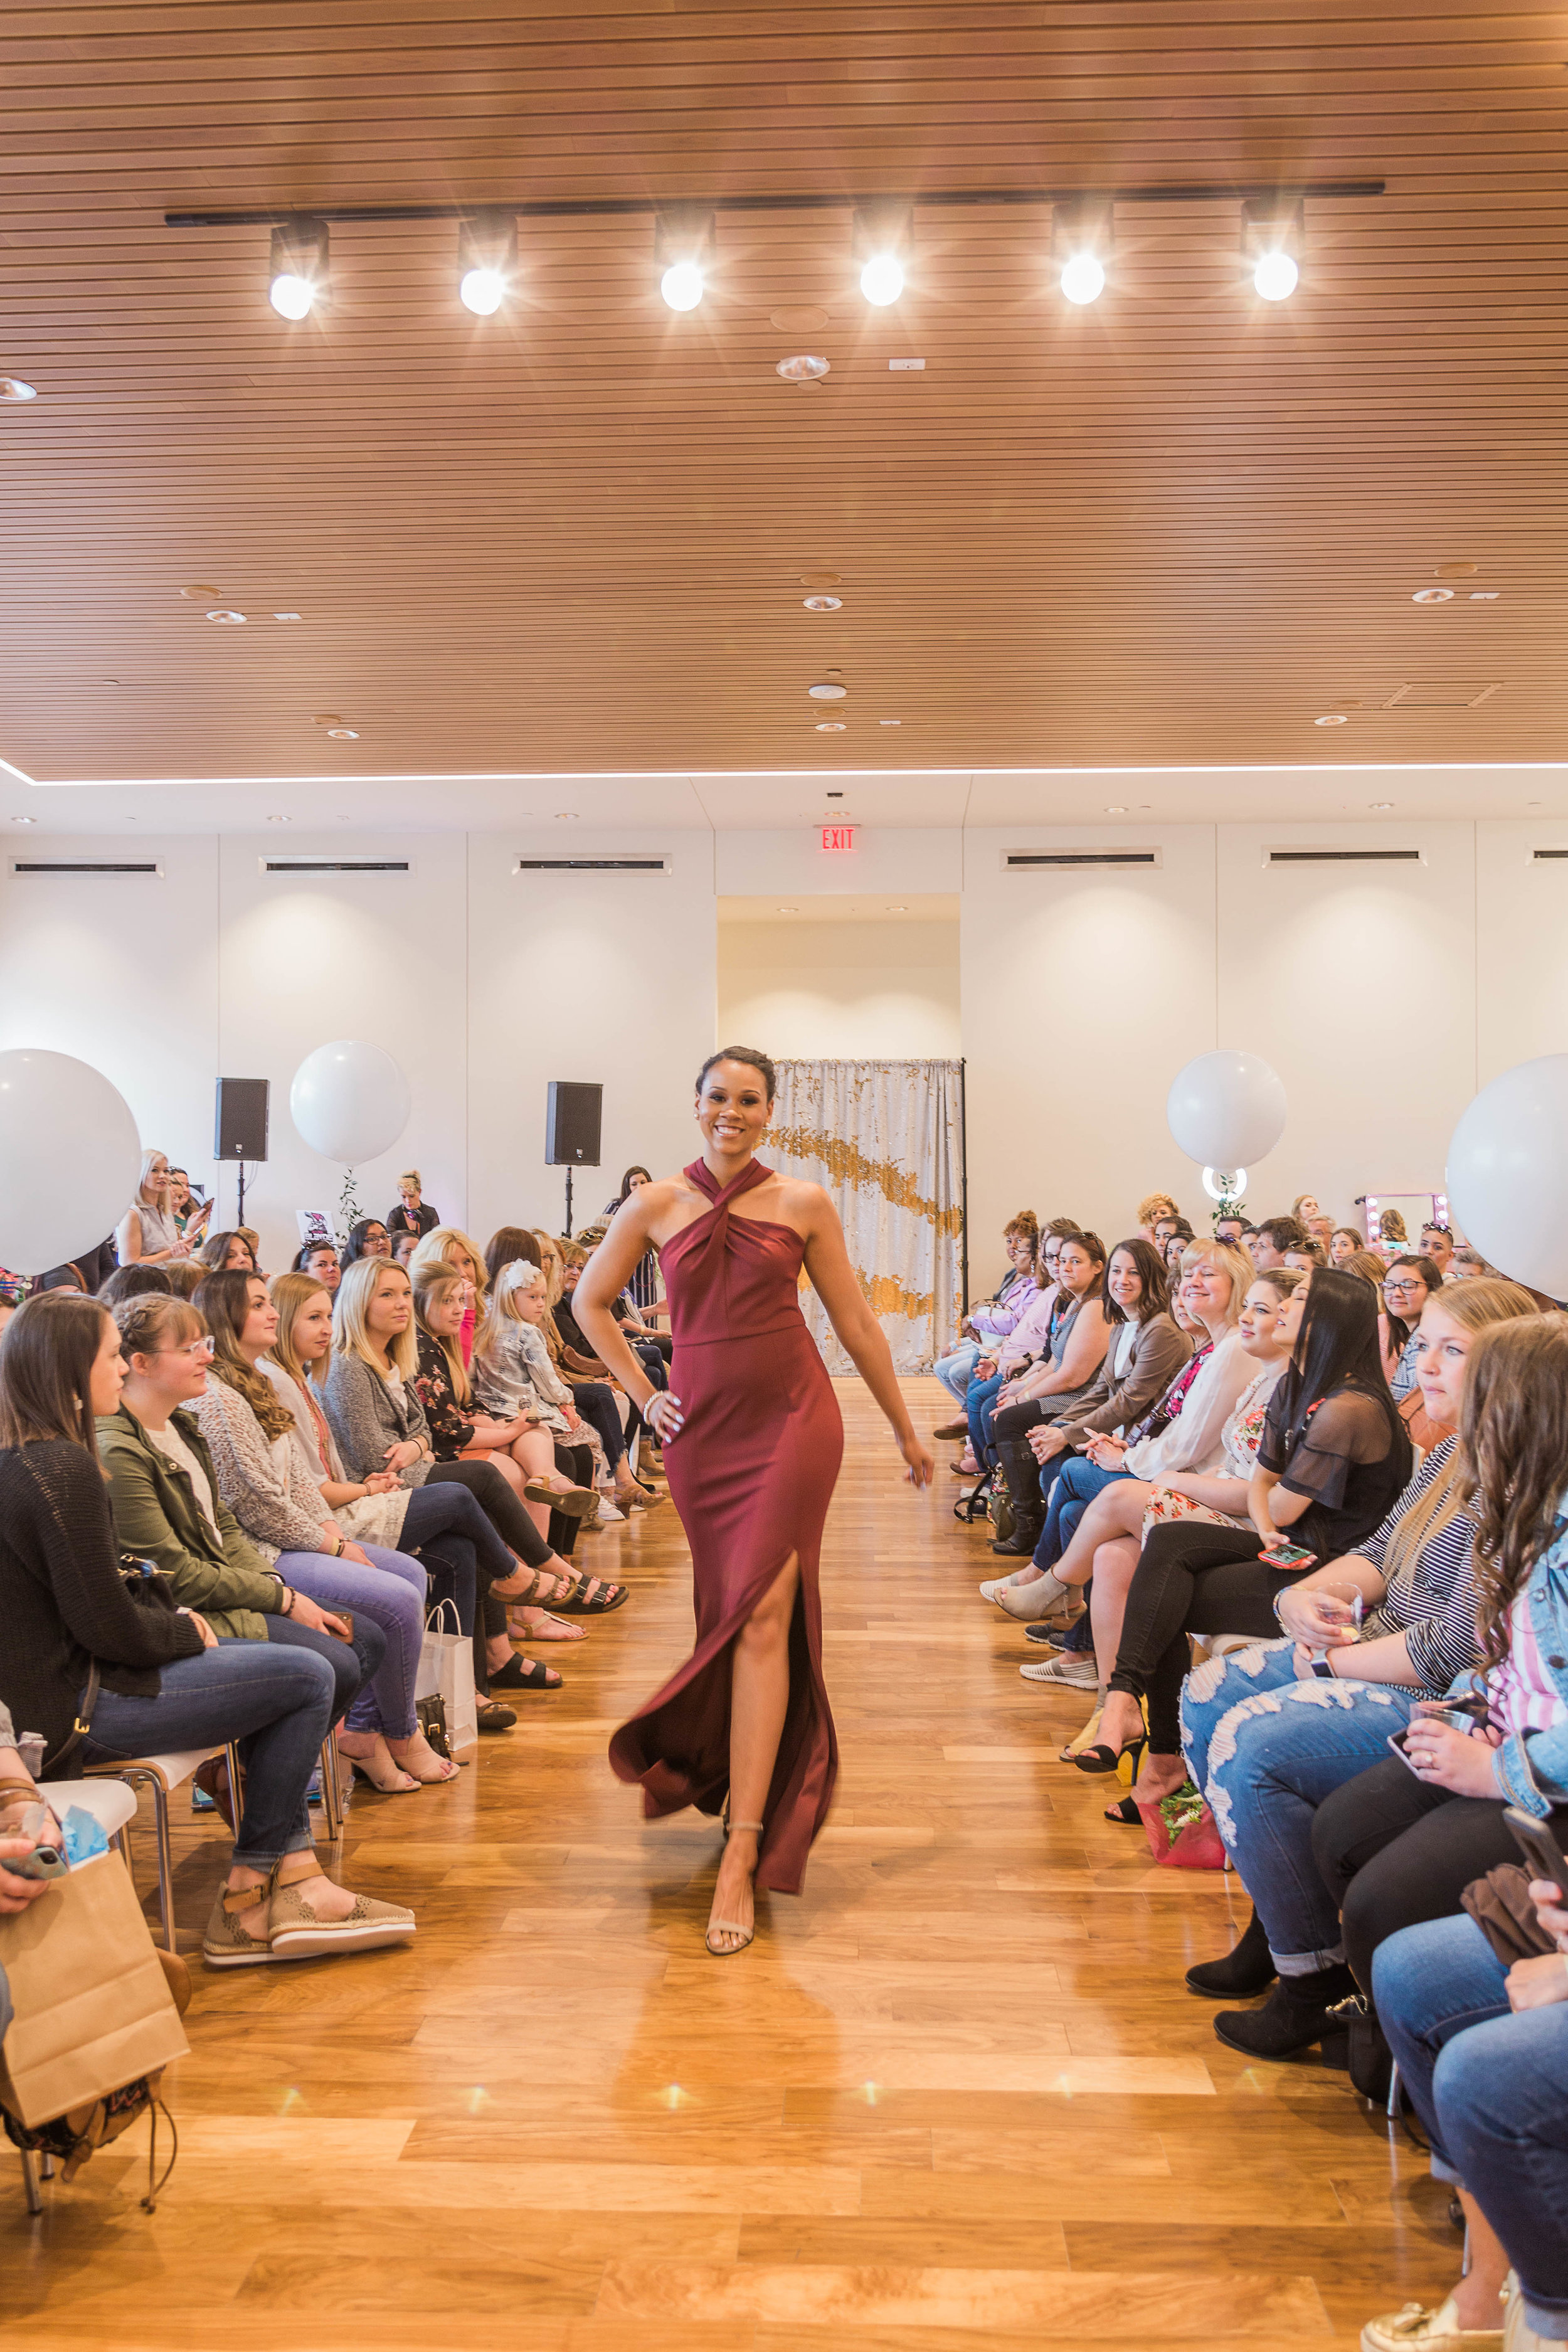 2019 Girl Boss Events Bridal Fashion Show in collaboration with Carrie Karibo Bridal and Glam on the Go LLC